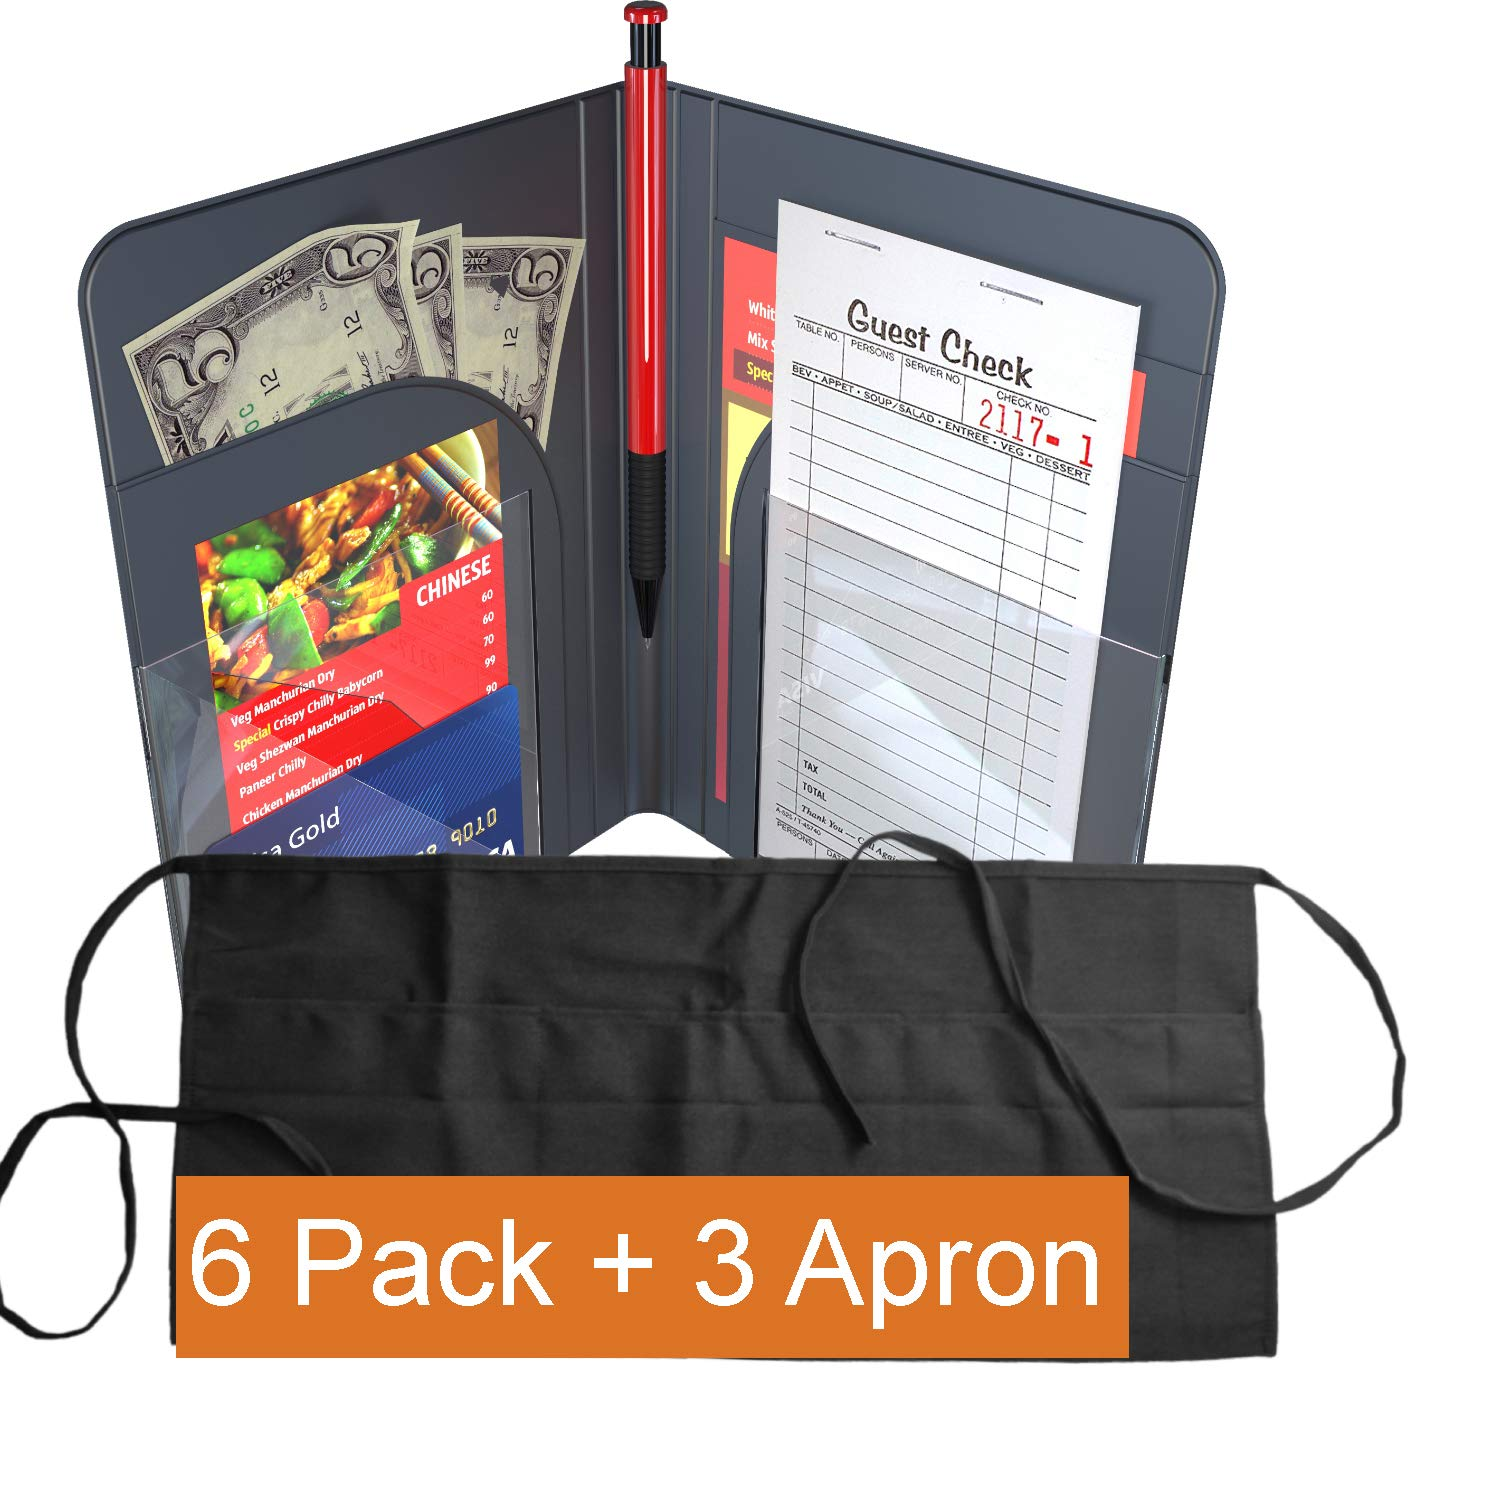 Waiter Book Server Wallet Server Pads Waitress Book Restaurant Waitstaff Organizer, Guest Check Book Holder Money Pocket (6 Pack + 3 Apron (Black))